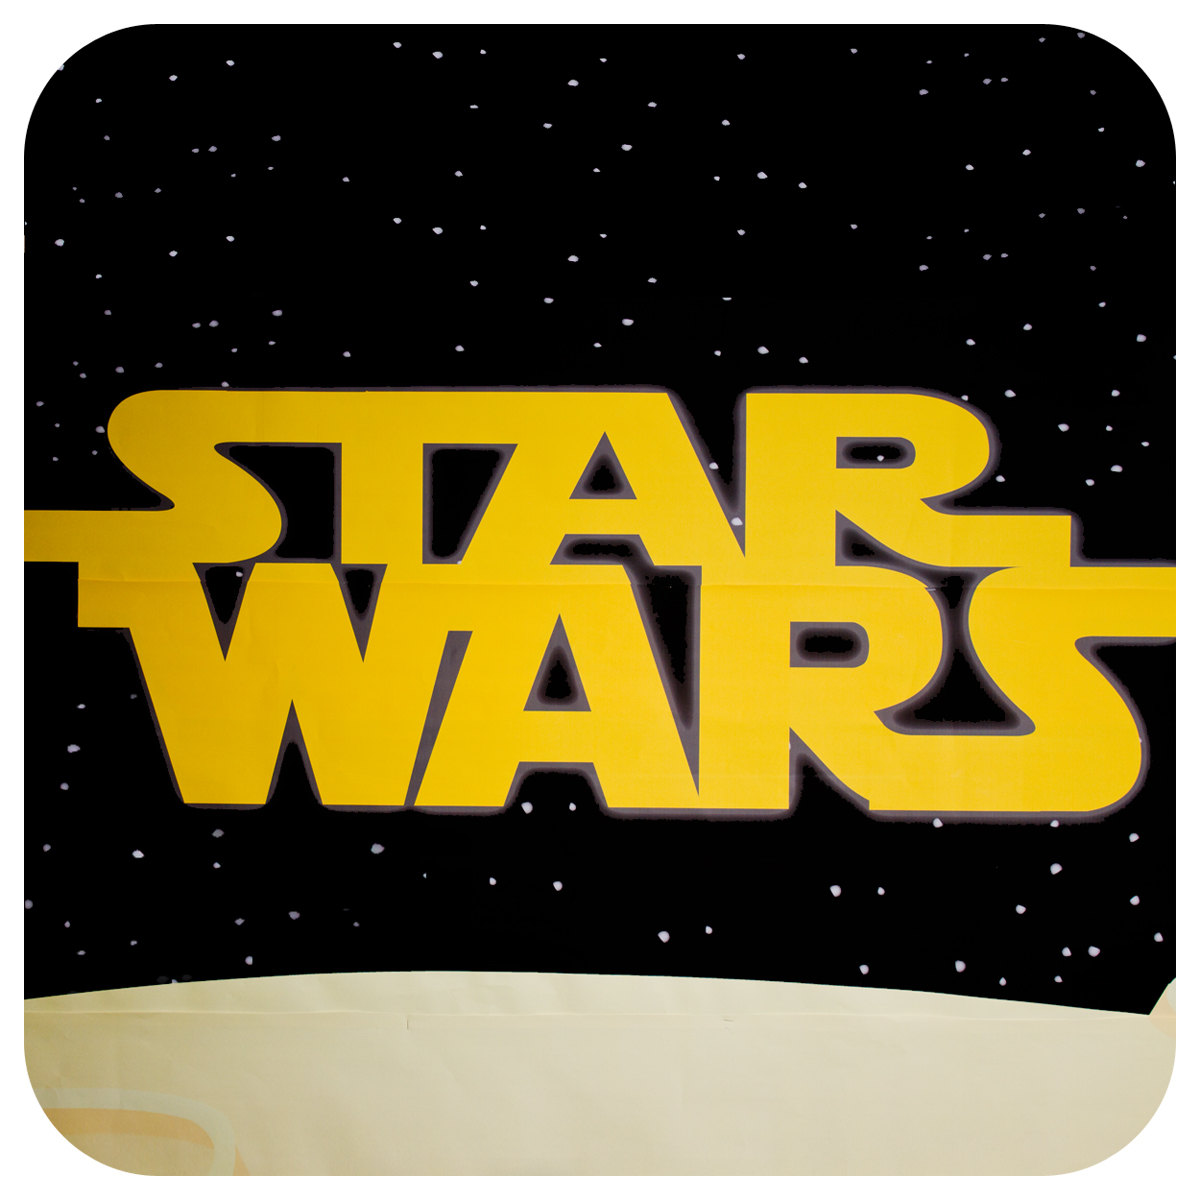 Star Wars clipart background Clipart Star  backgrounds wars